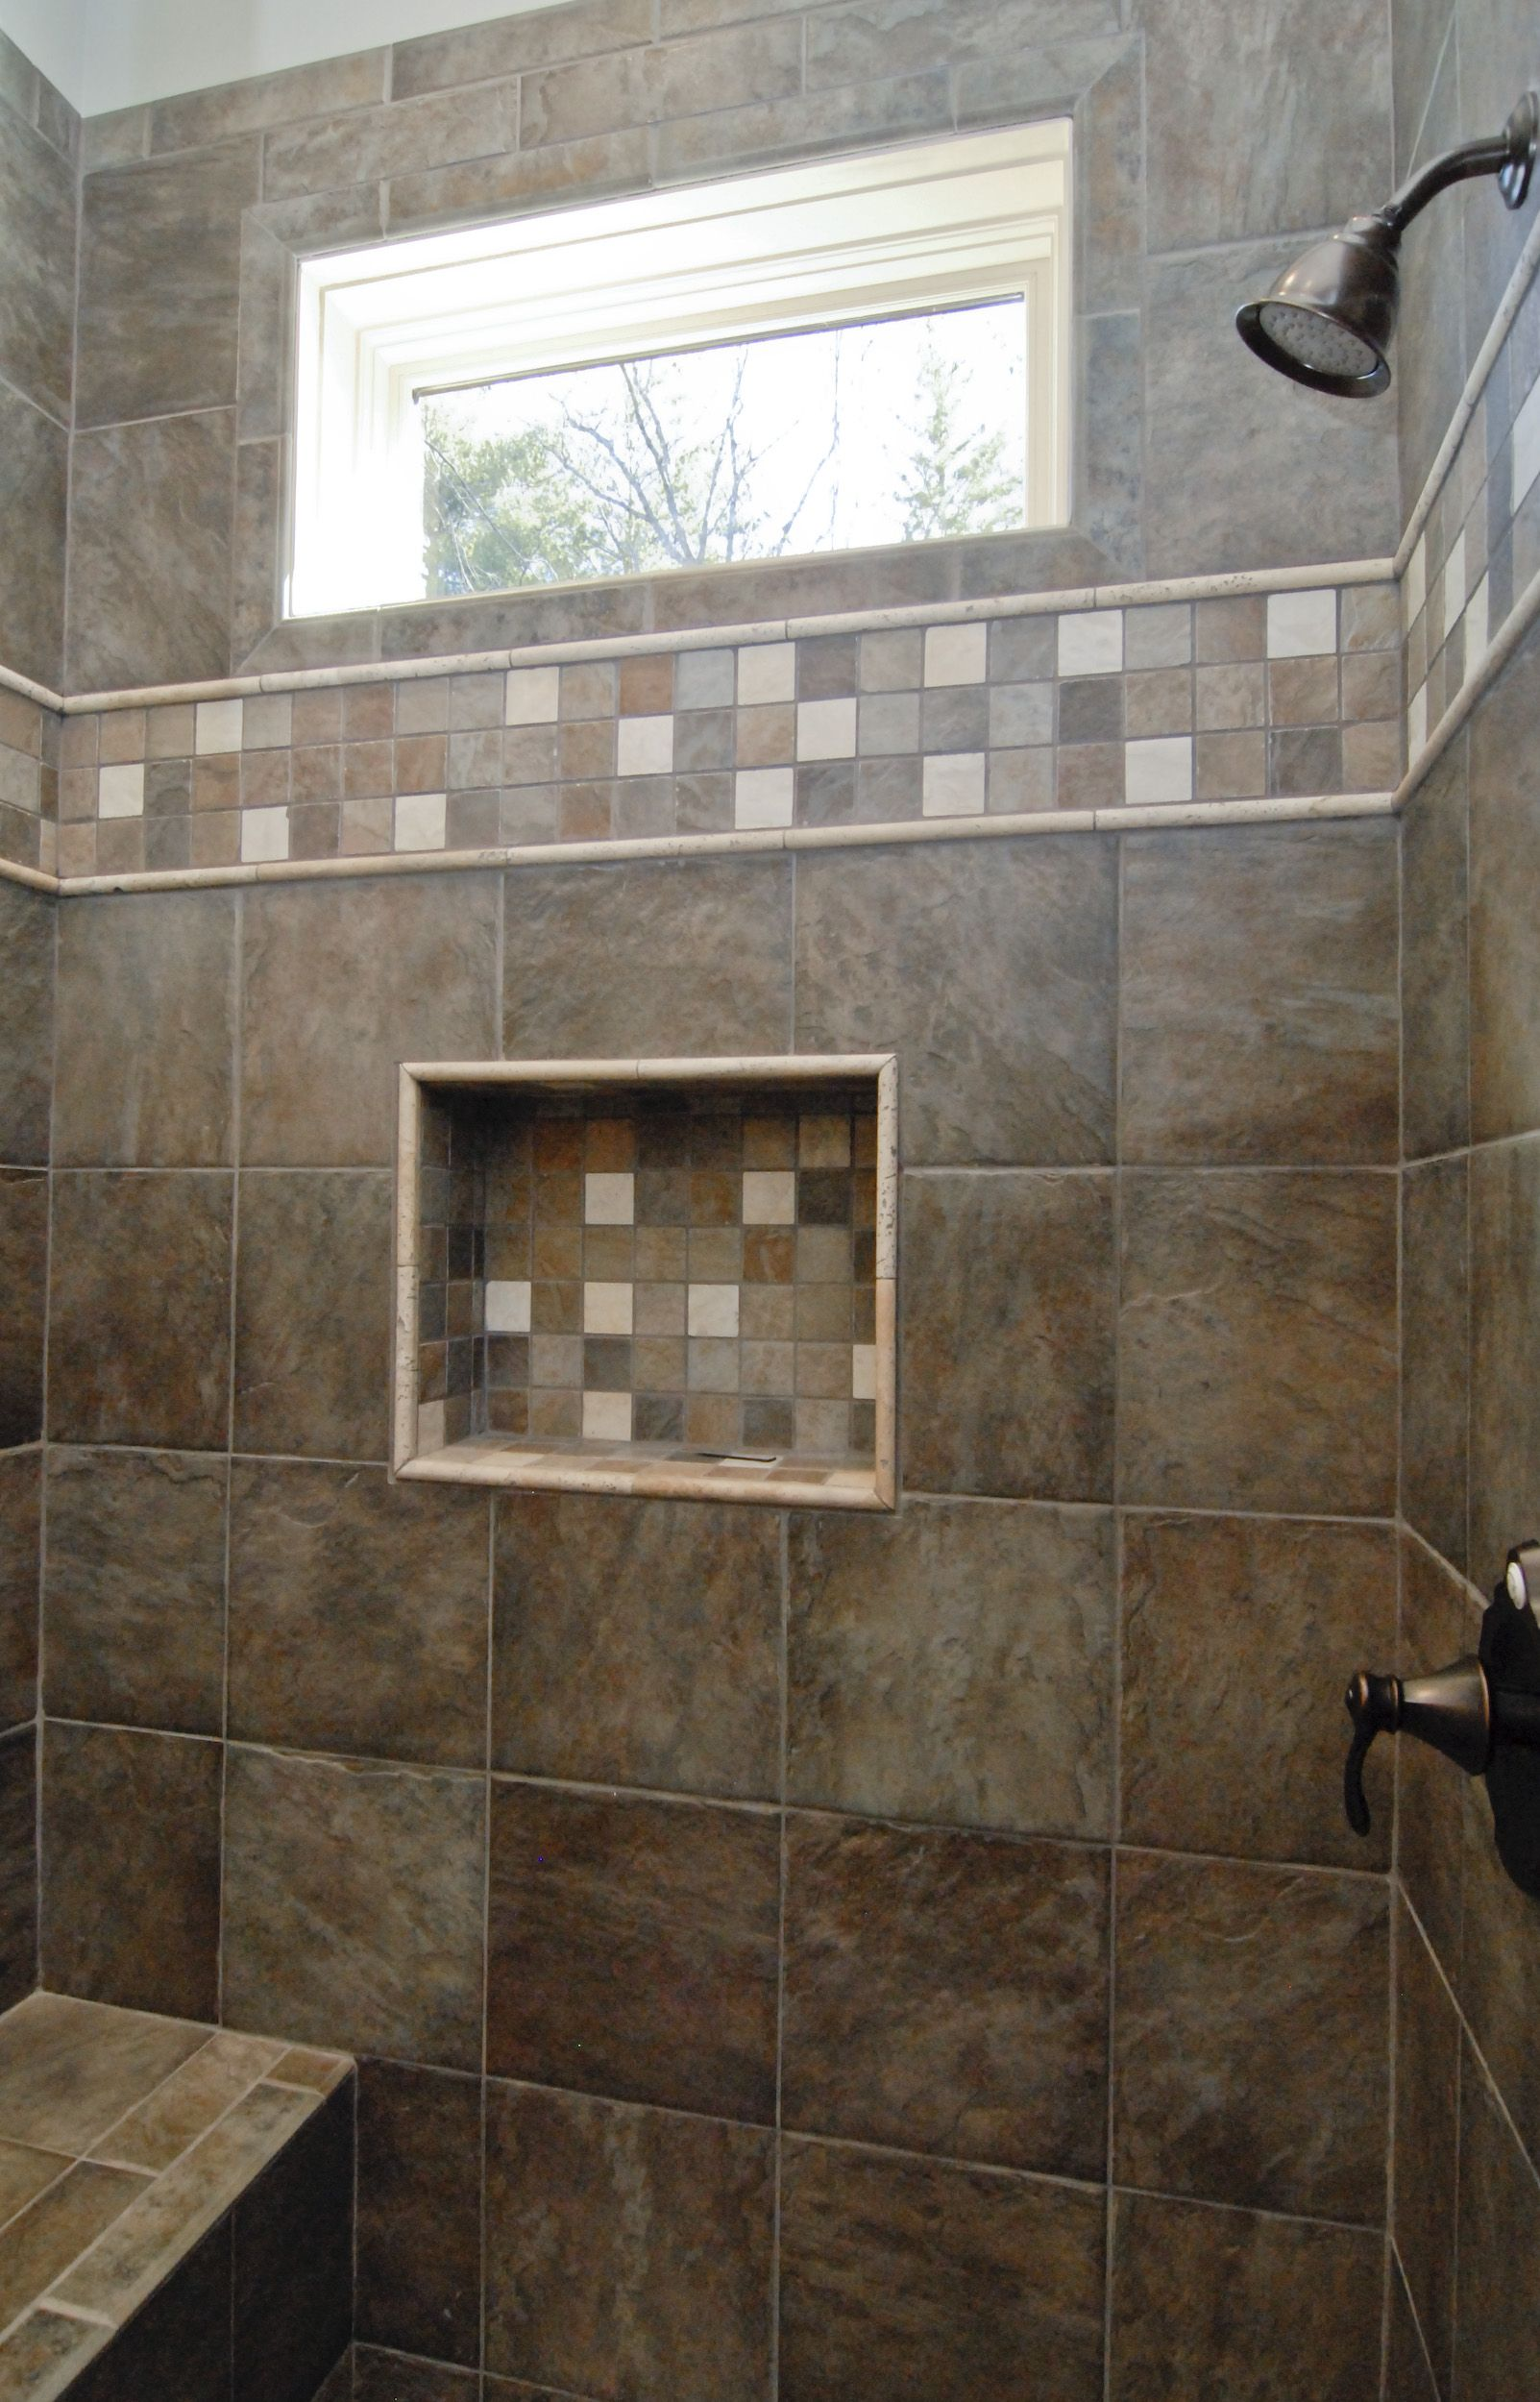 Gorgeous Dark Brown Custom Tile Walk In Shower With A Window And Bench Www Goodwinfoust Com Tile Walk In Shower Window In Shower Shower Remodel